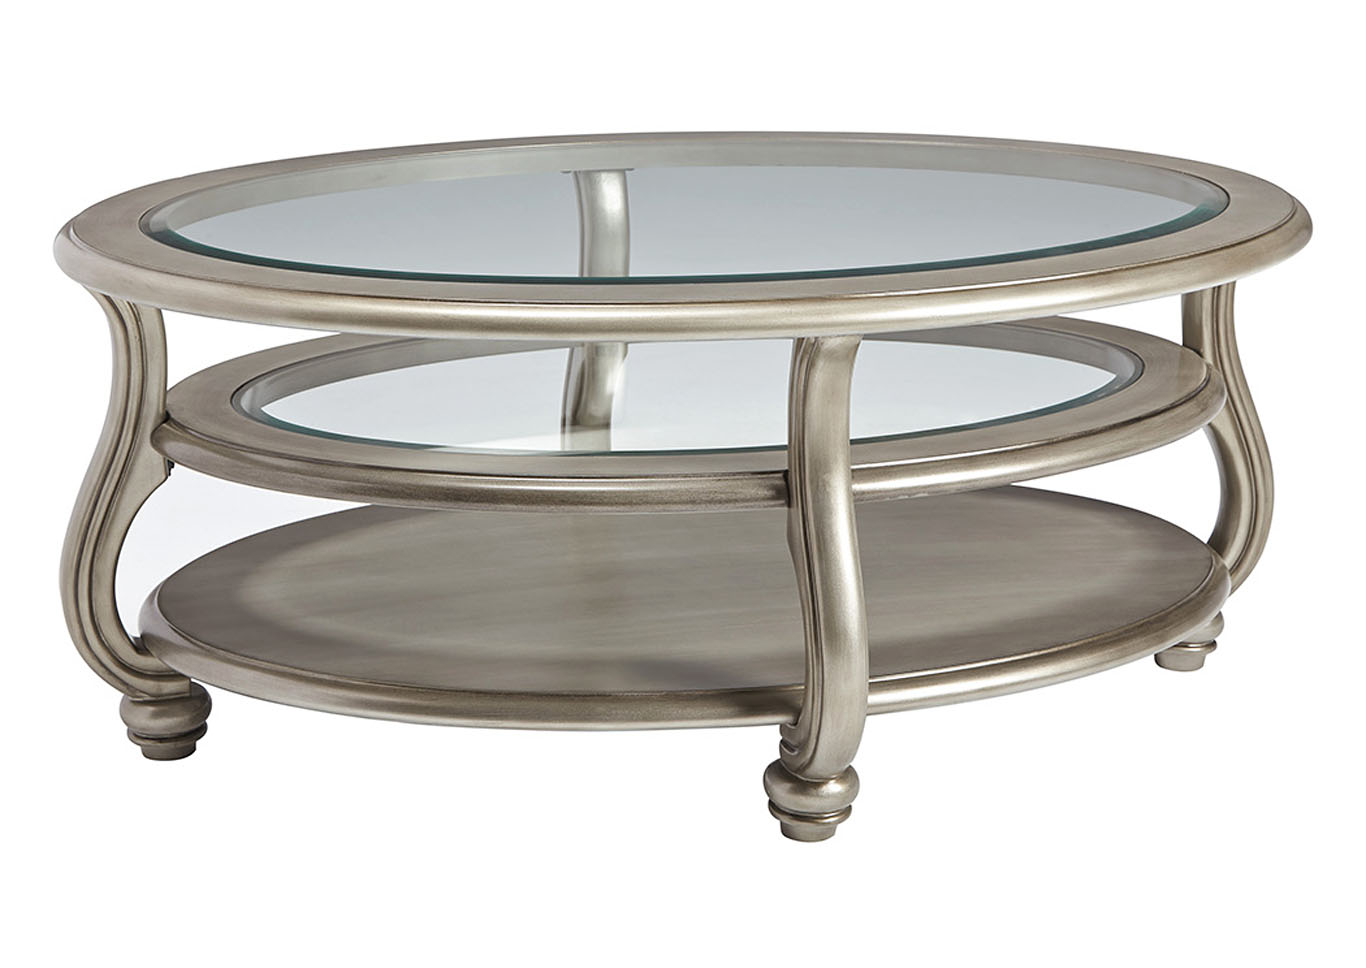 Alabama Furniture Market Coralayne Silver Finish Oval Cocktail Table